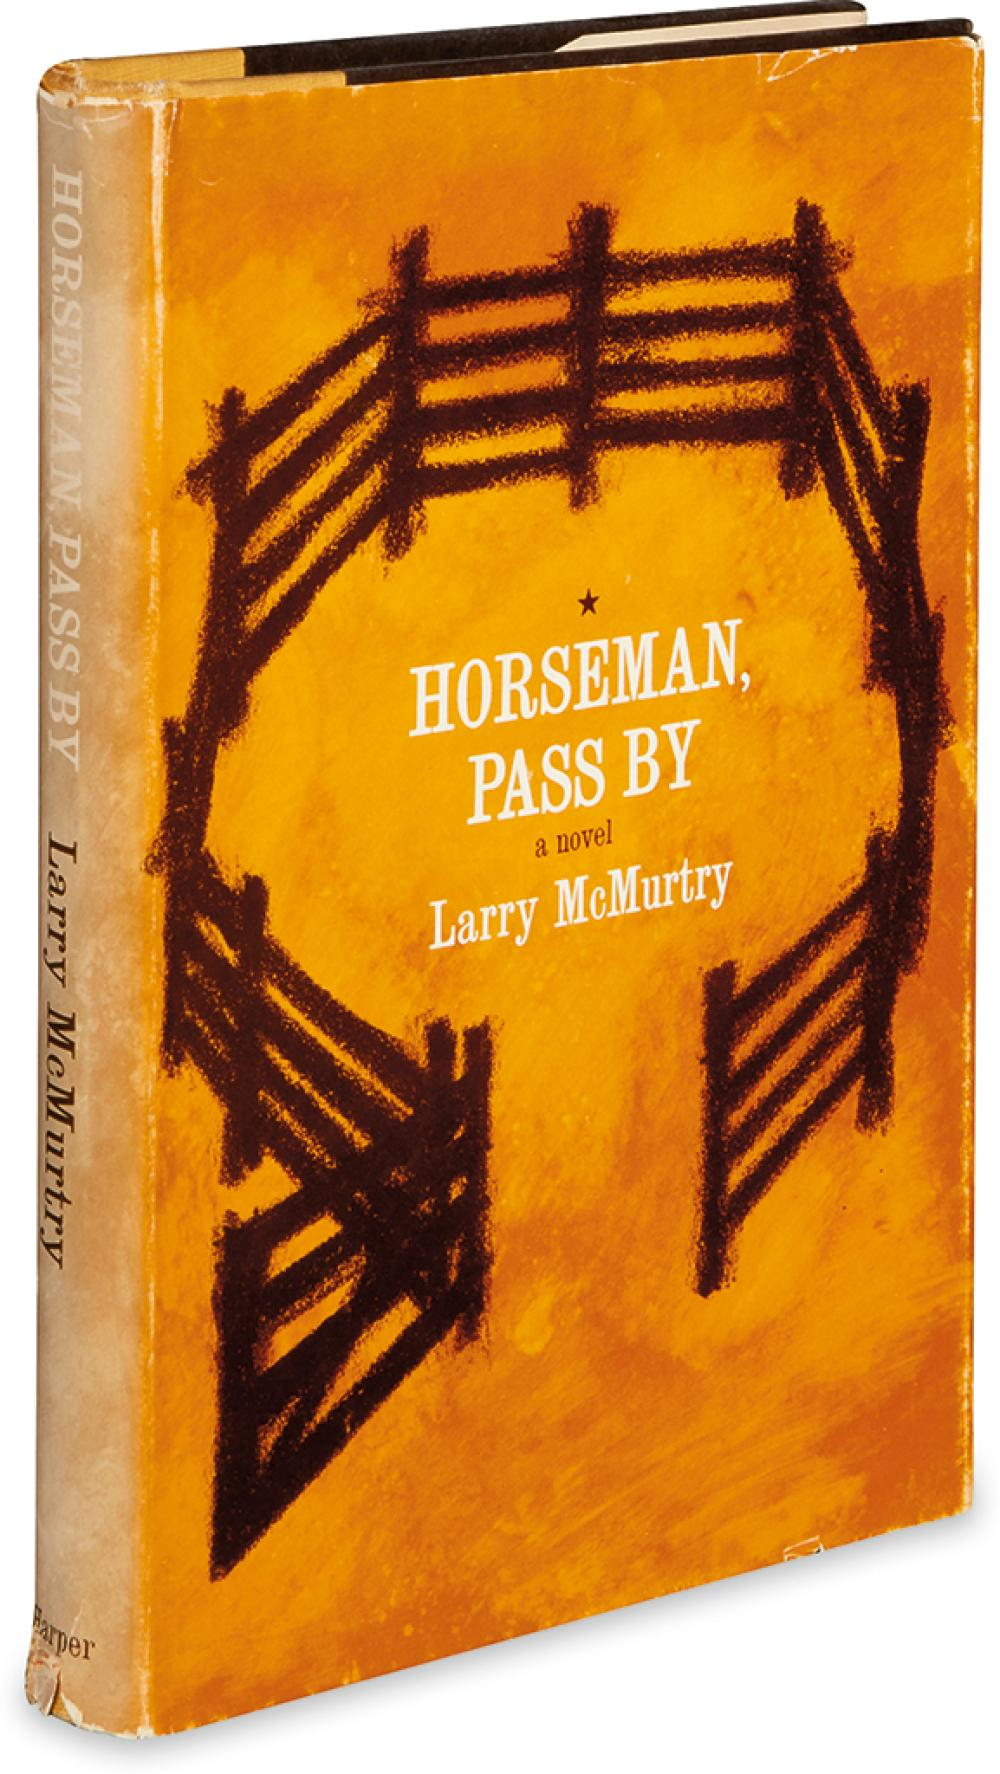 MCMURTRY, LARRY. Horseman, Pass By.